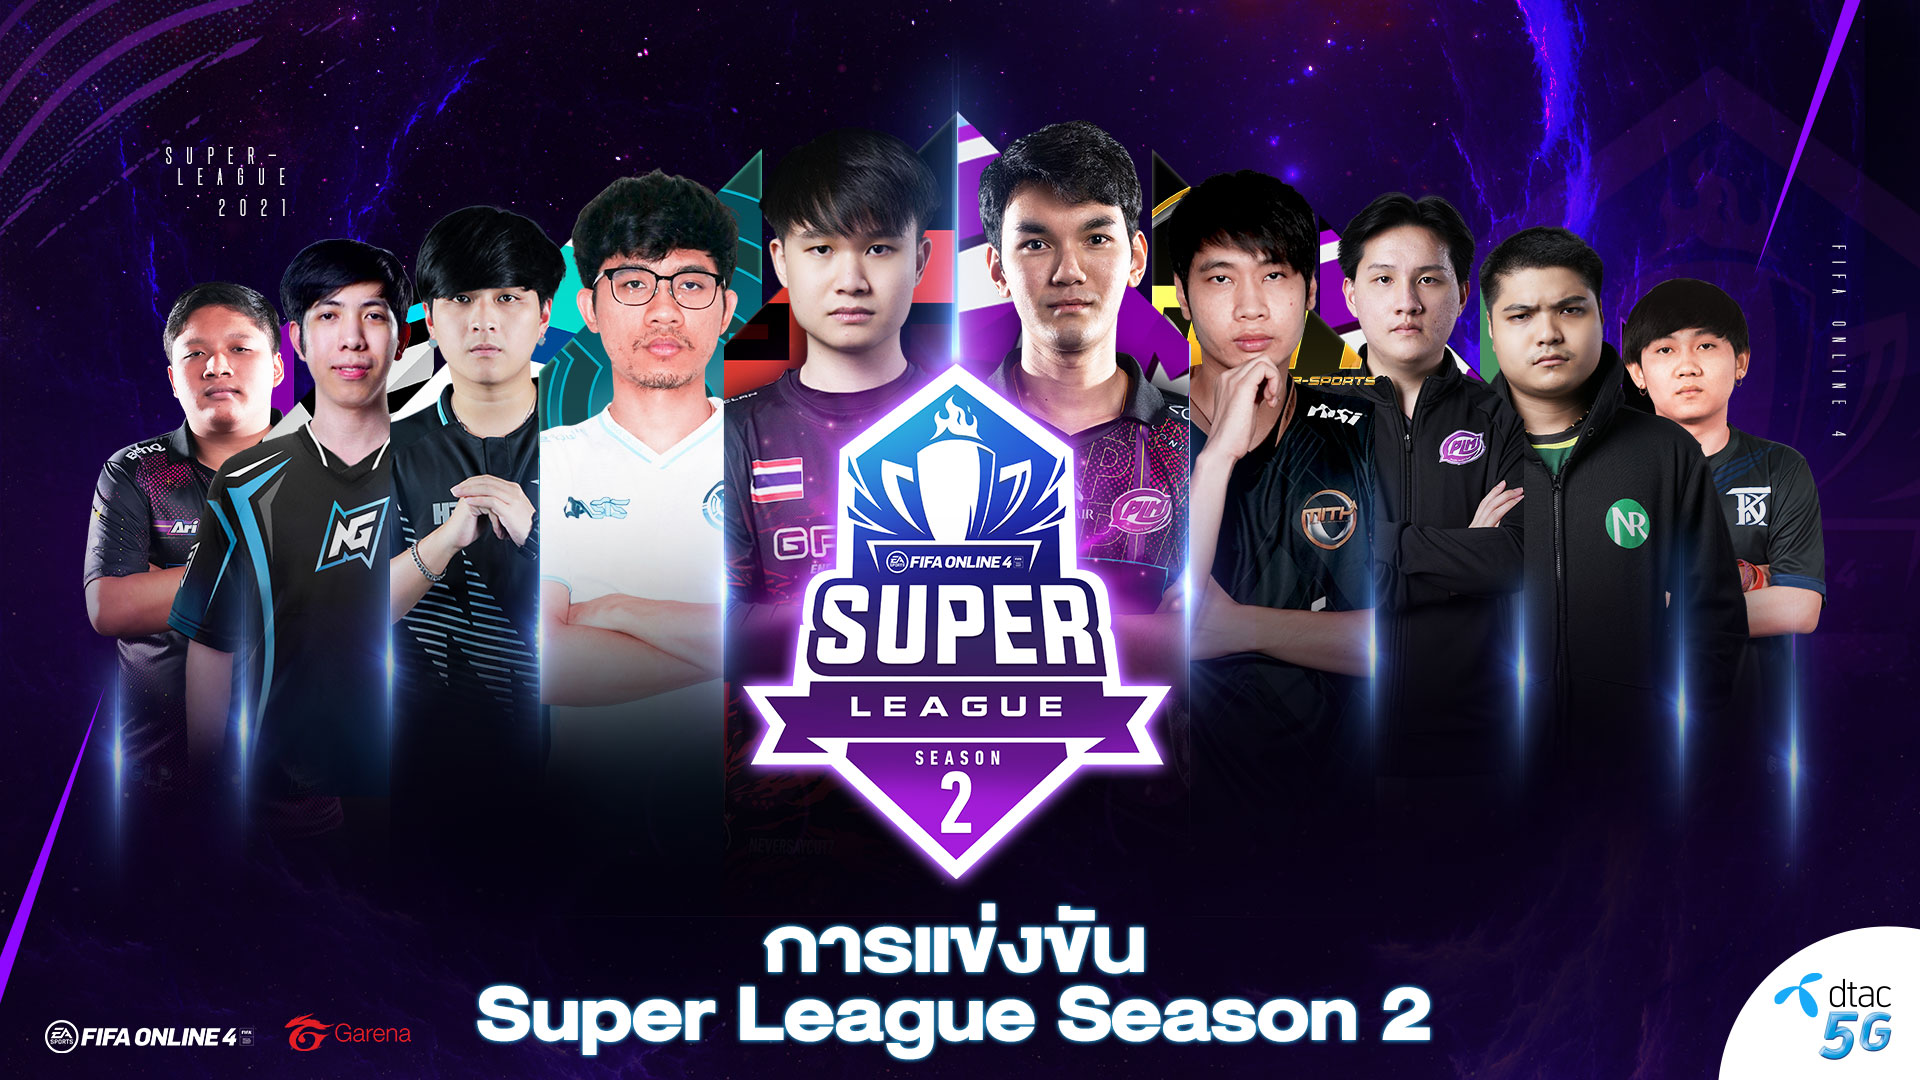 FIFA ONLINE 4 Garena Super League Season 2 การีนา